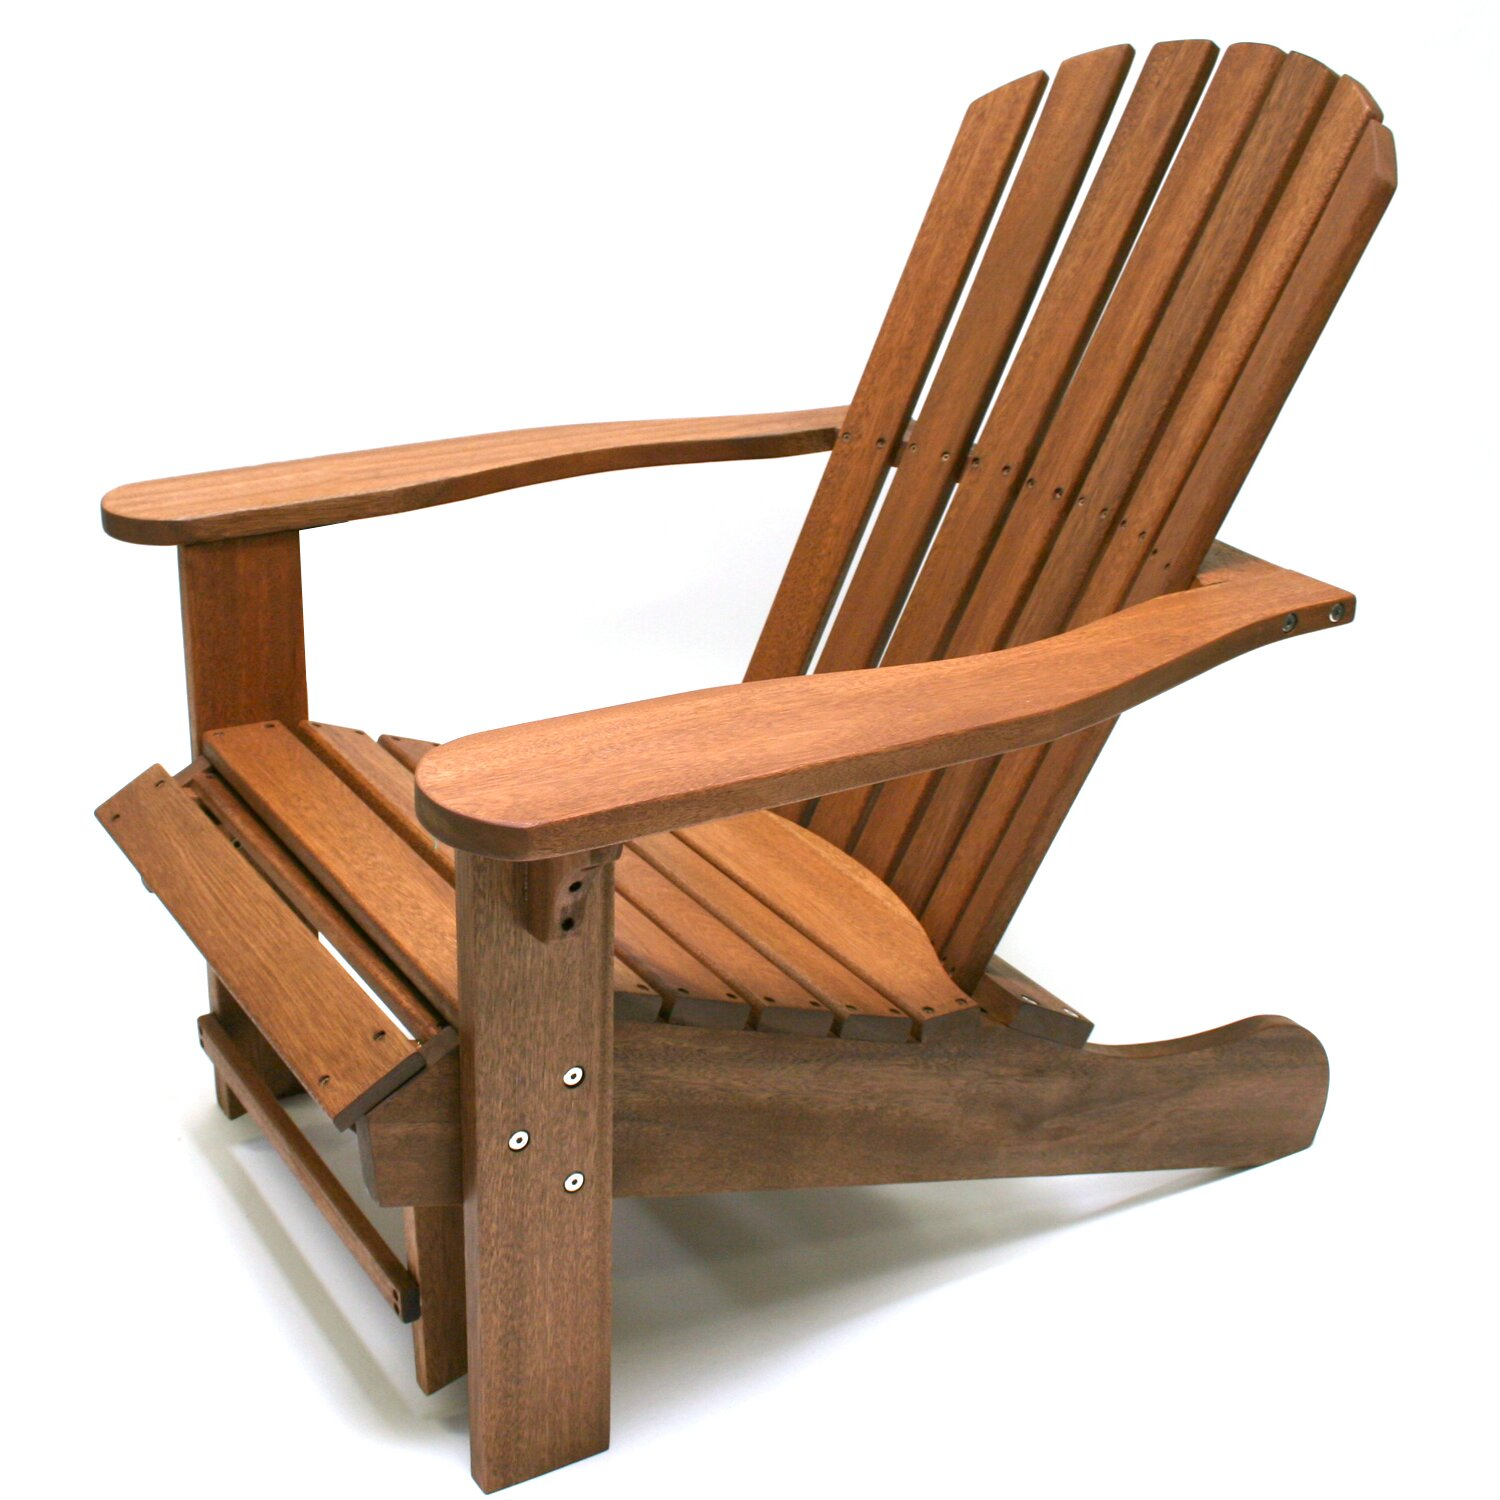 Birch lane vista adirondack chair reviews birch lane for Sillas para la playa